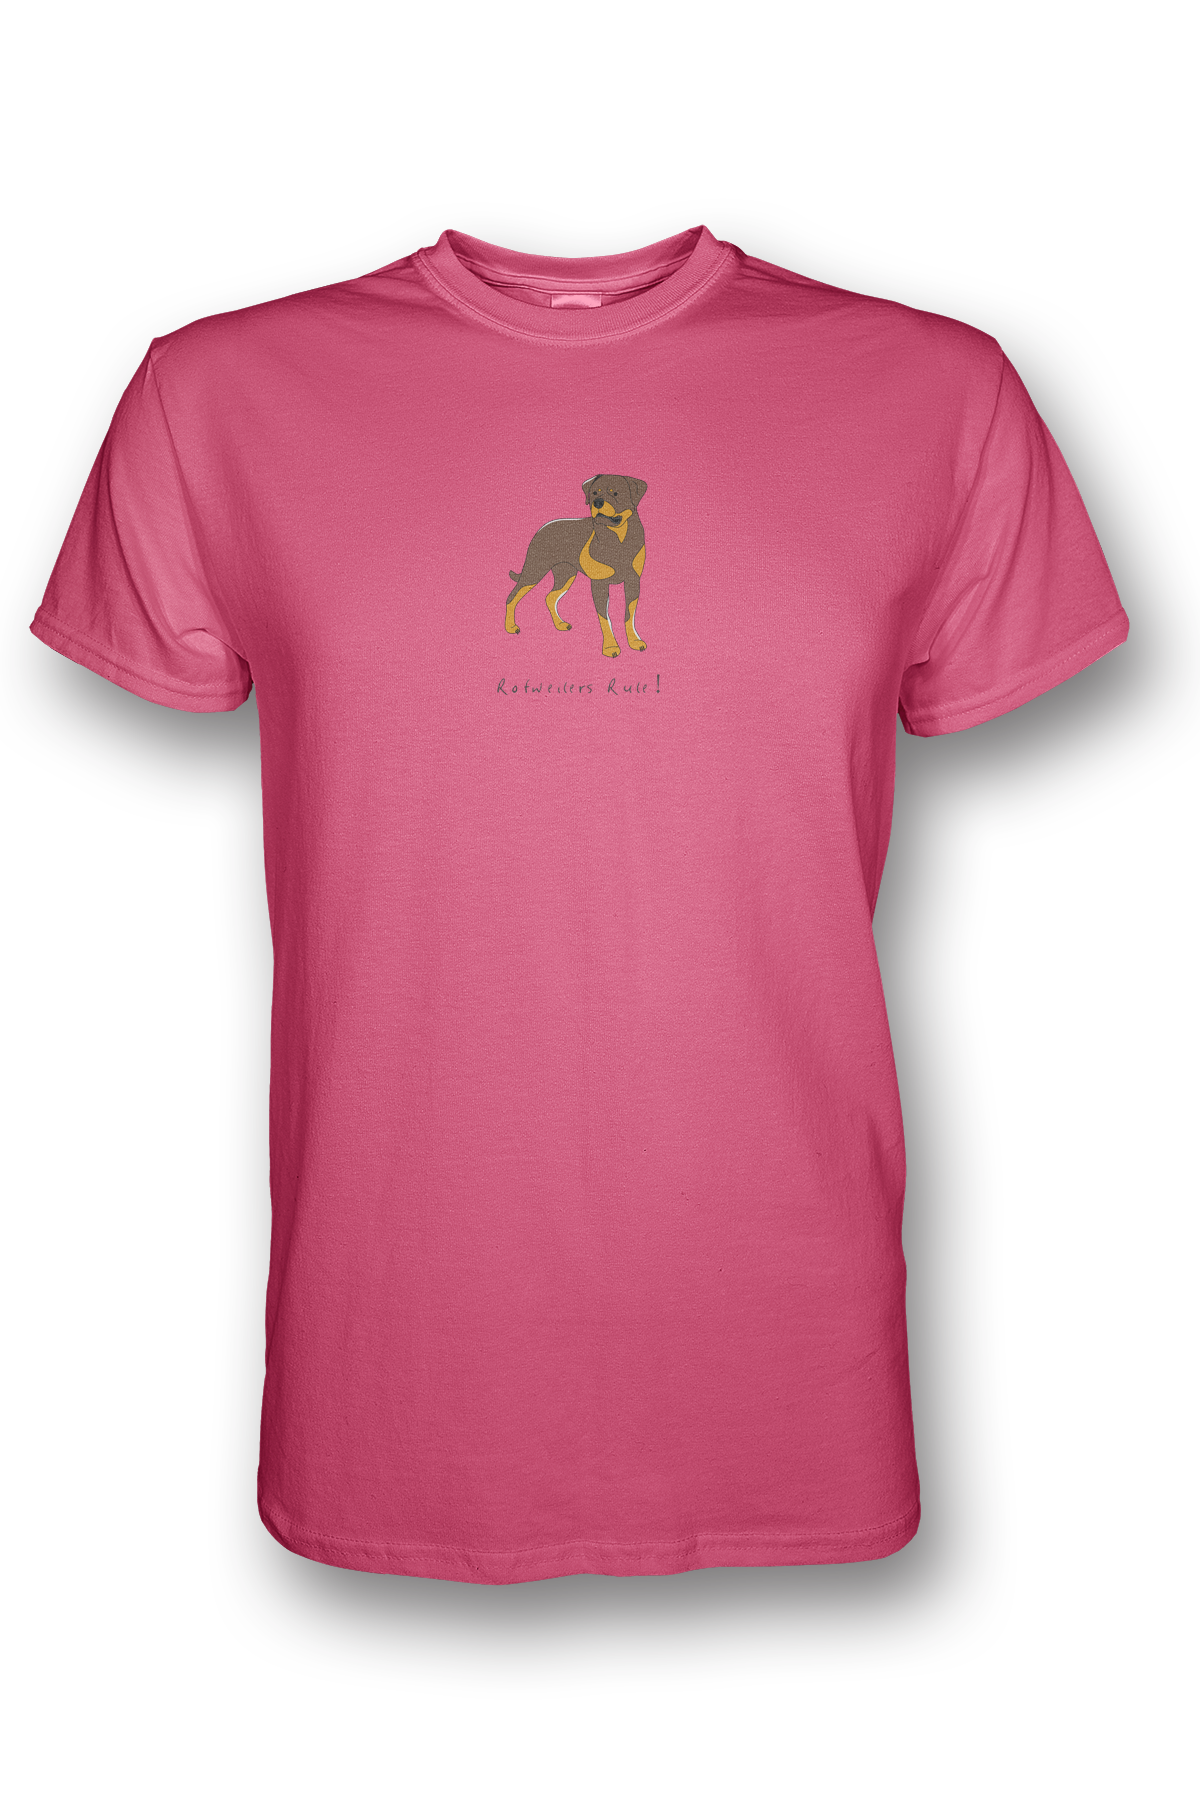 Mens Crew Neck T-Shirt - Rotweilers Rule! Neon Pink